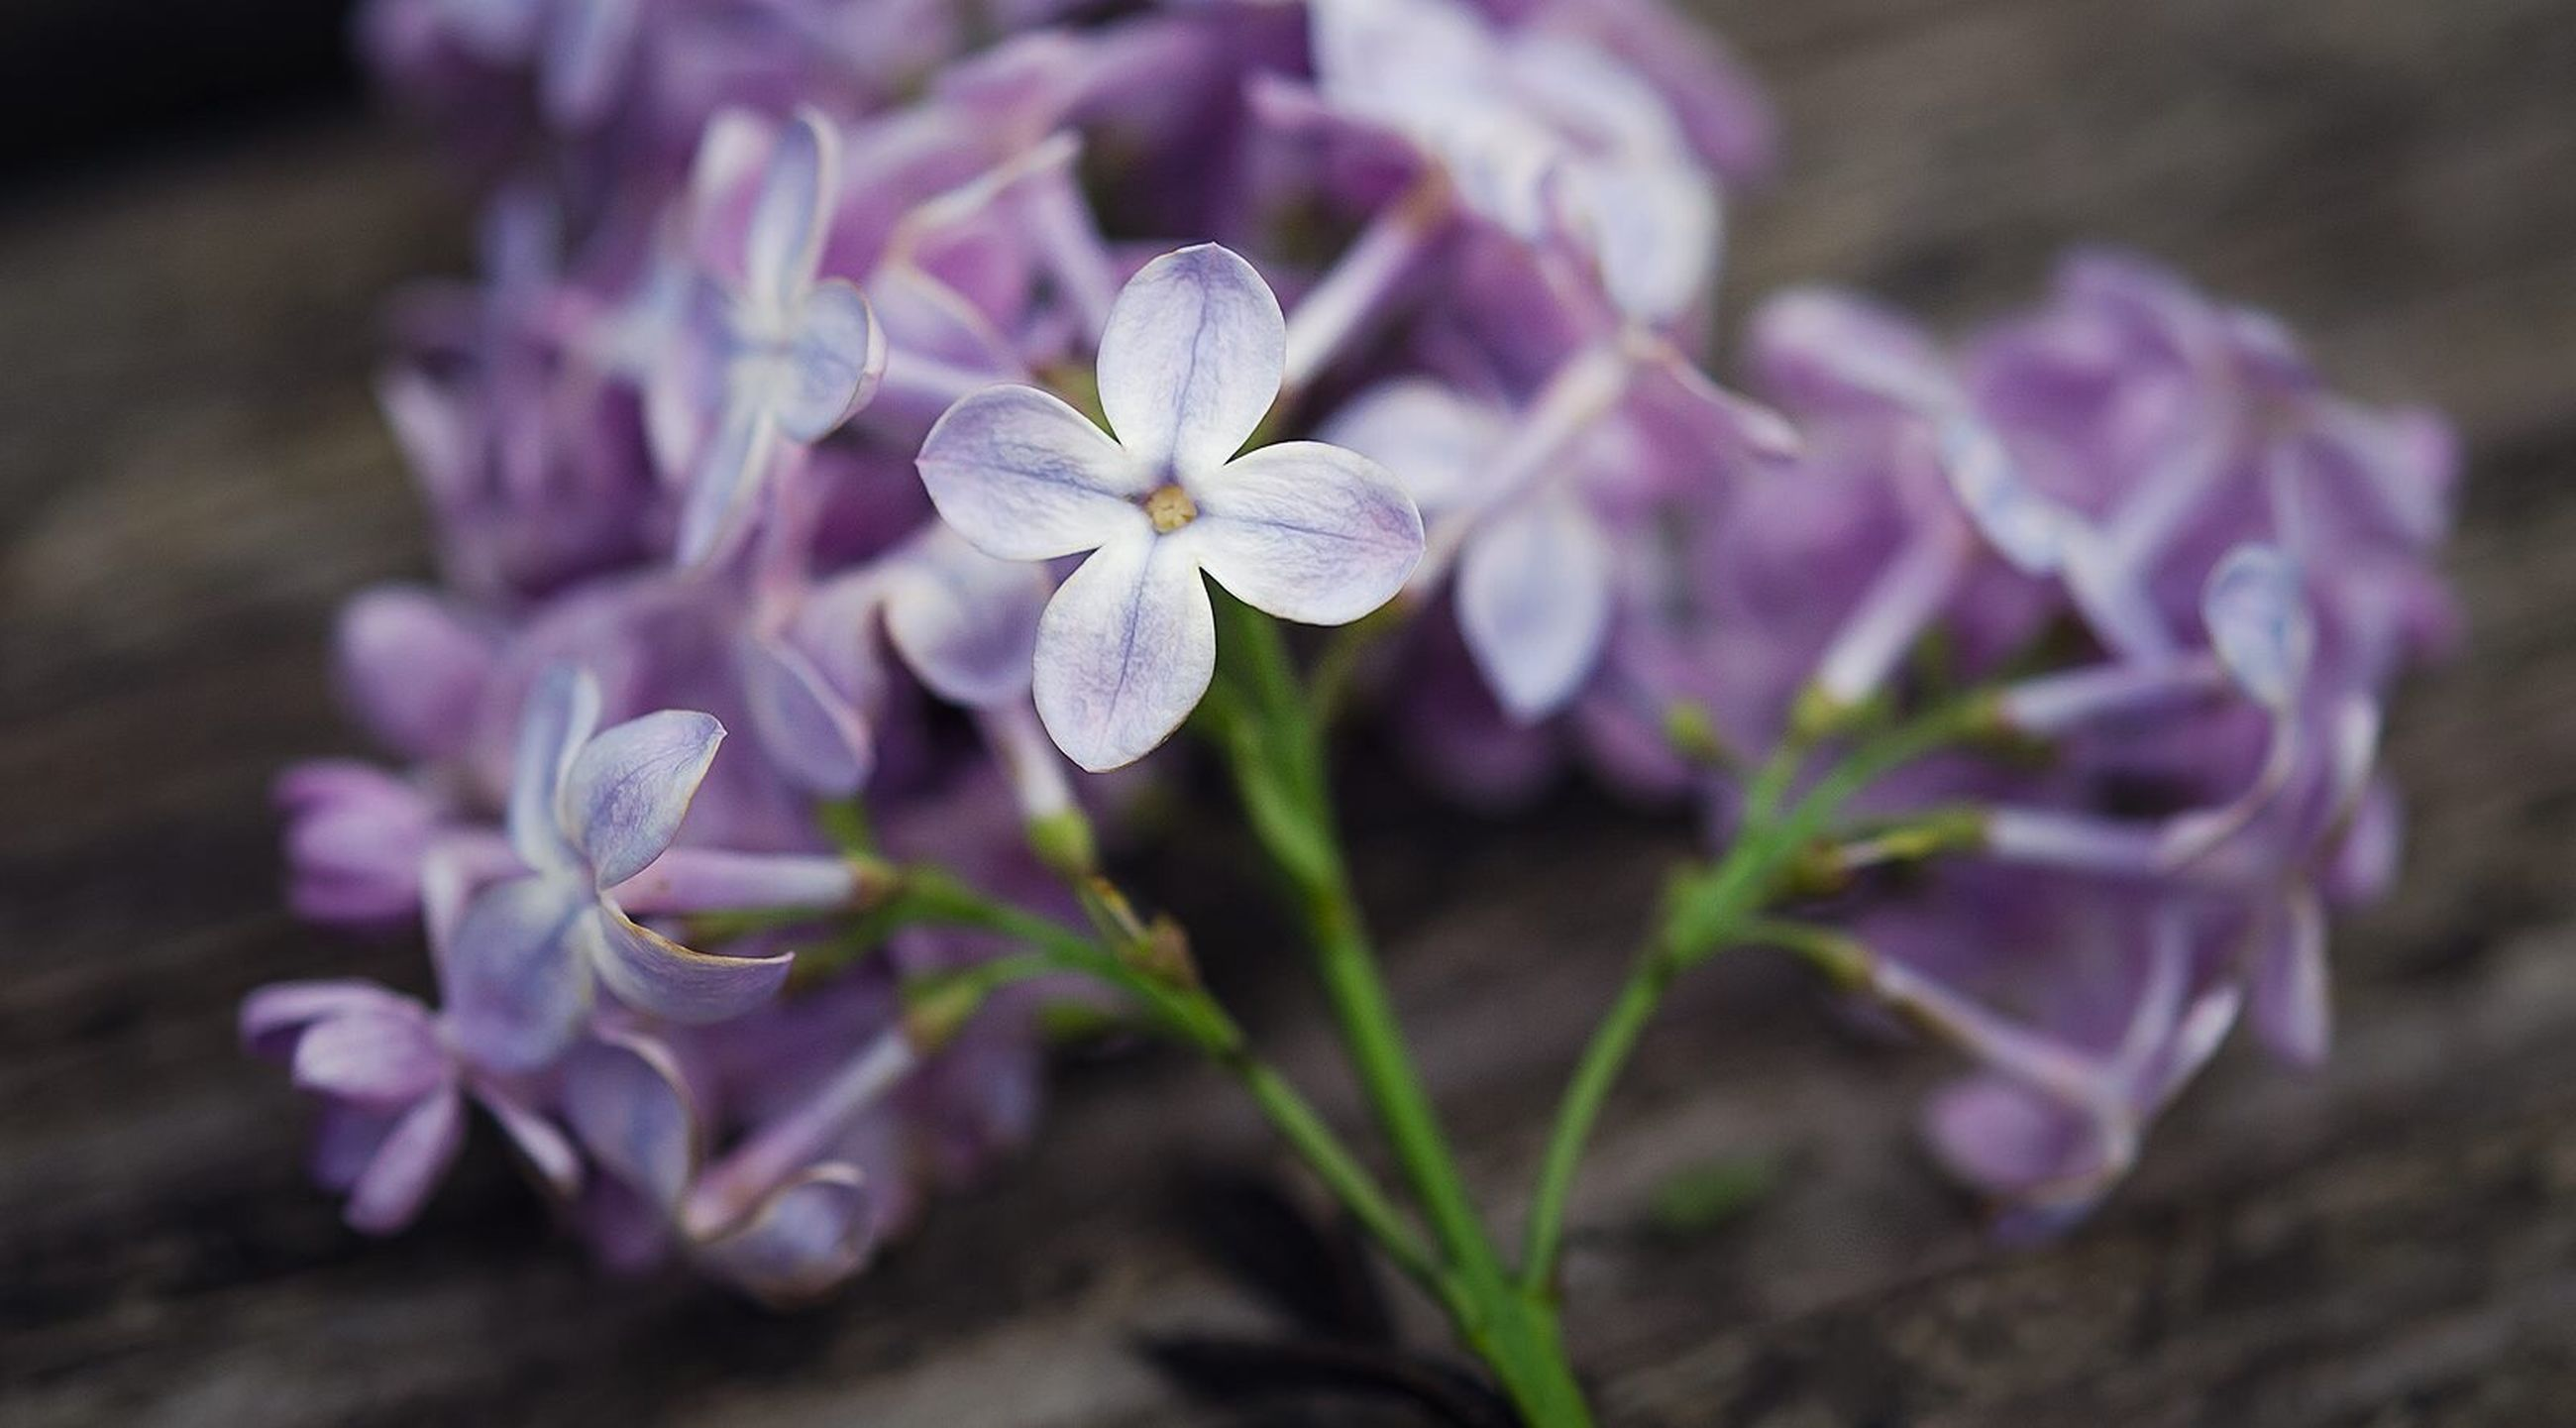 flower, freshness, fragility, growth, petal, close-up, focus on foreground, flower head, beauty in nature, plant, nature, purple, blooming, selective focus, in bloom, botany, blossom, stem, day, no people